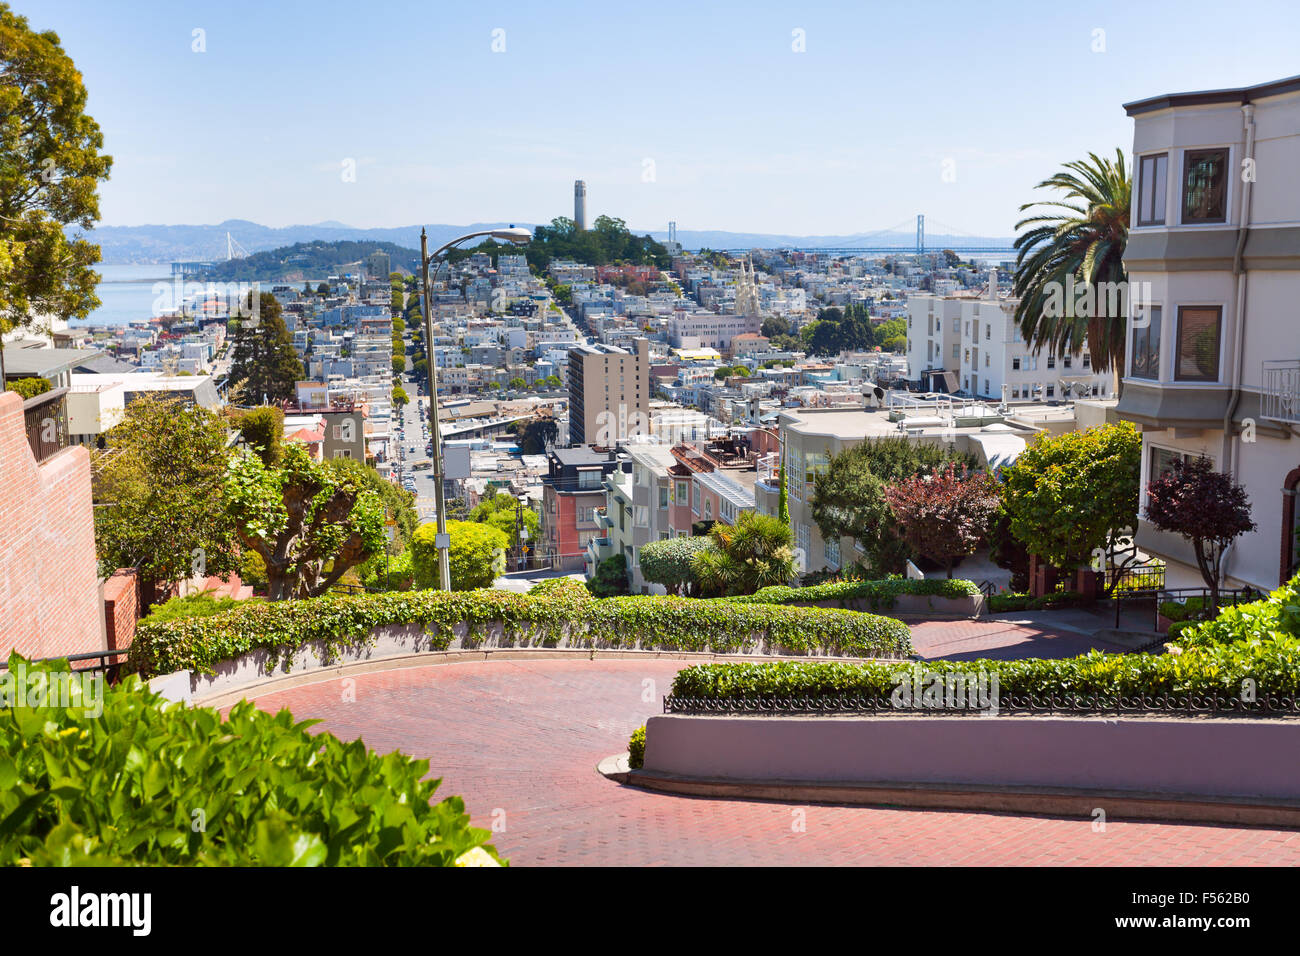 View of Lombard street, cityscape, San Francisco - Stock Image